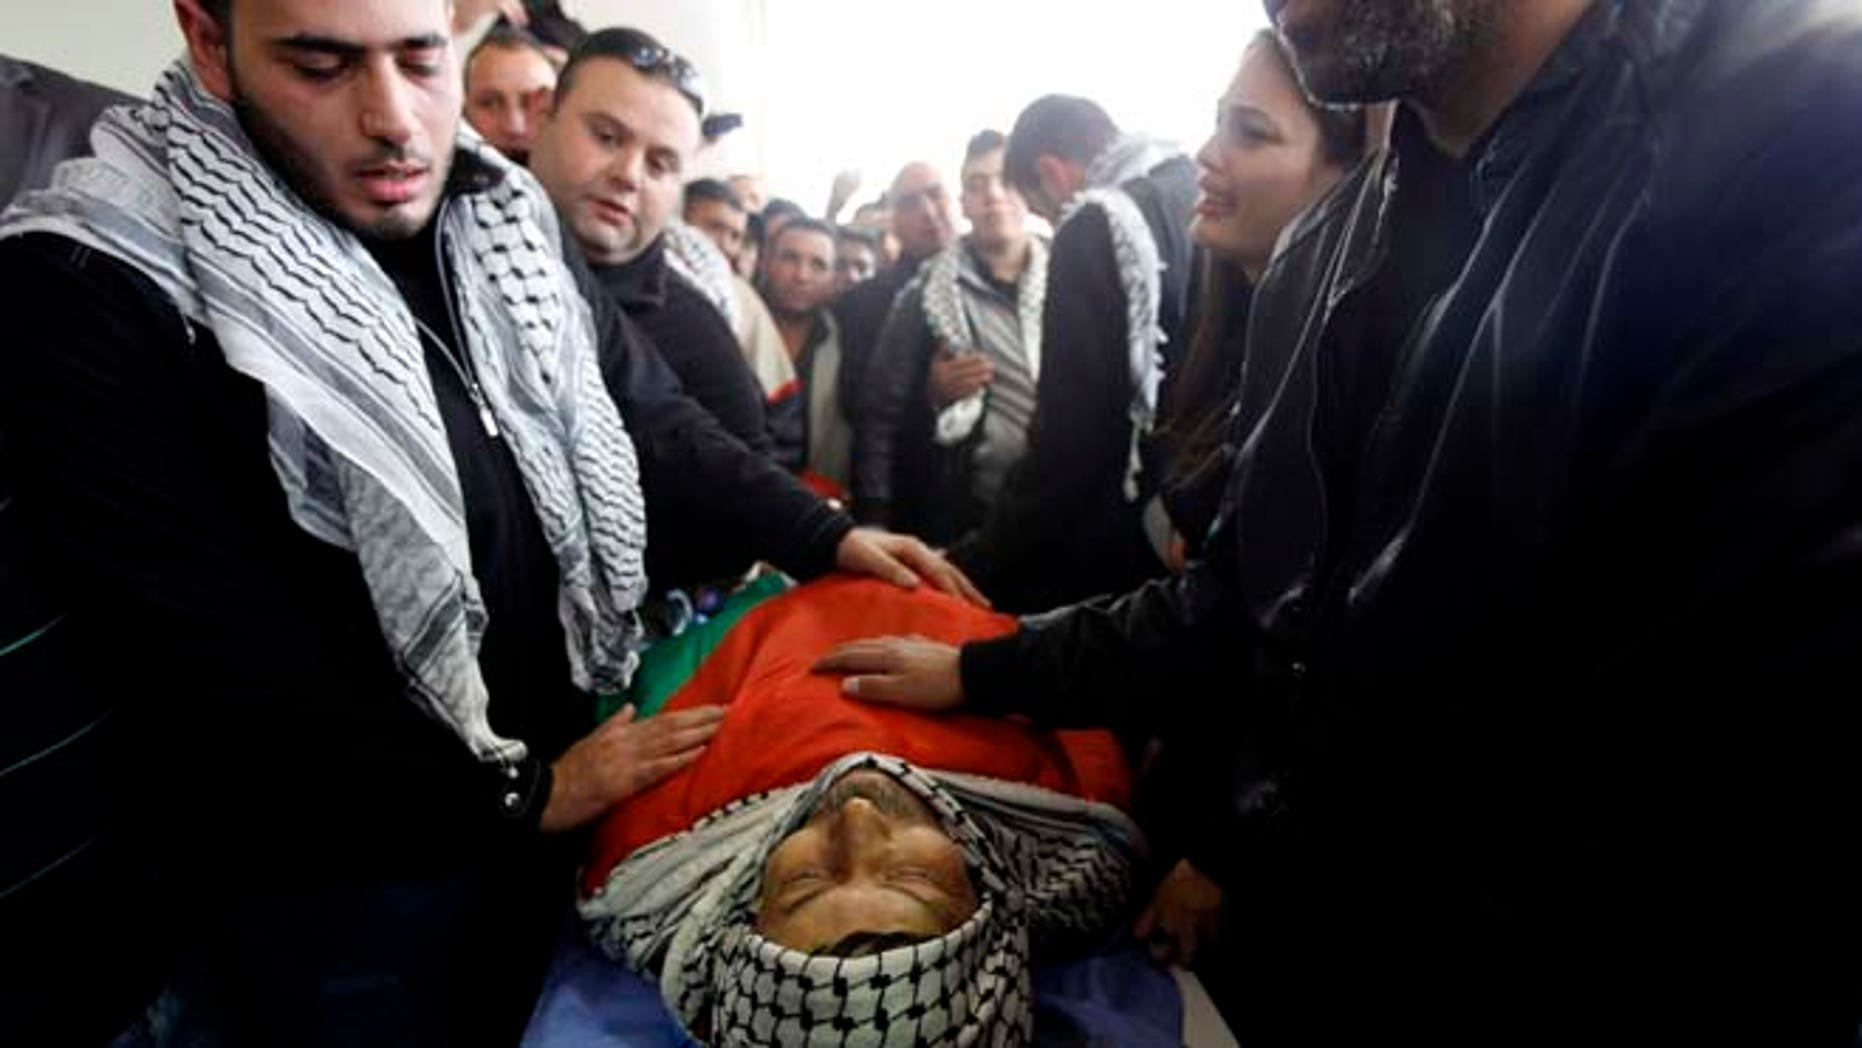 Dec. 11, 2014: Relatives of Palestinian Cabinet member Ziad Abu Ein mourn over his body during his funeral in the West Bank city of Ramallah.